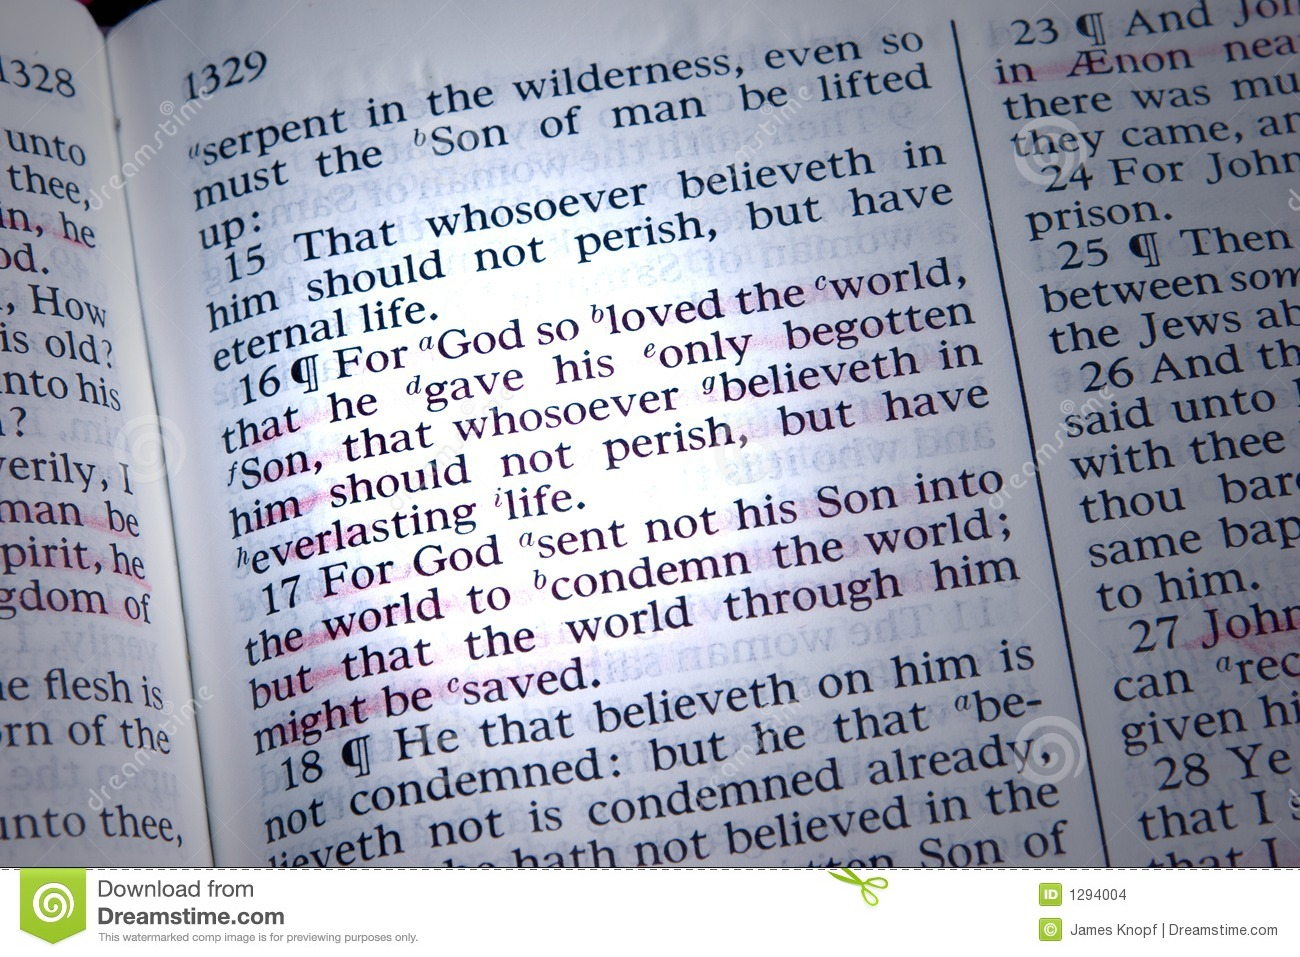 Bible is opened to John 3:16, highlighted by a beam of light.